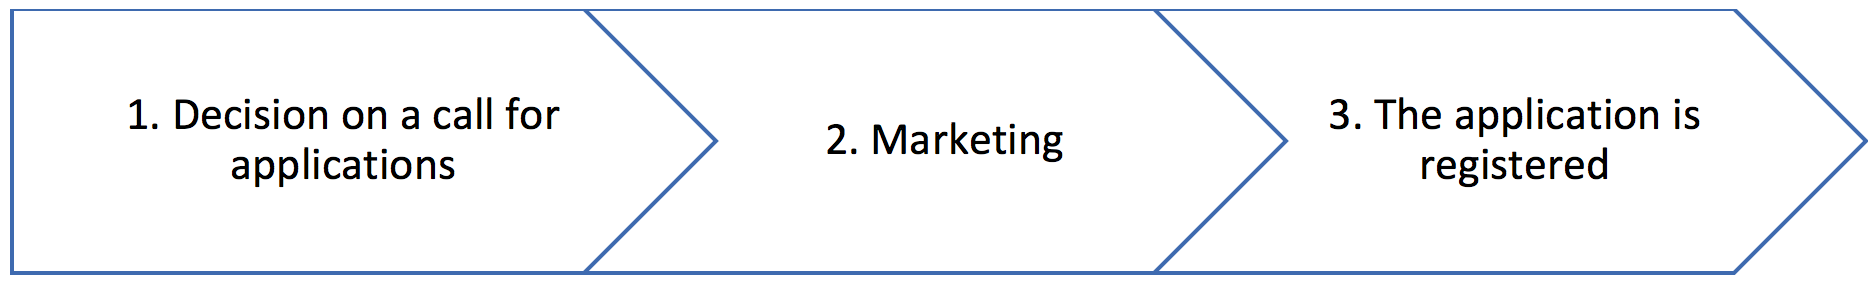 Marketing and applications